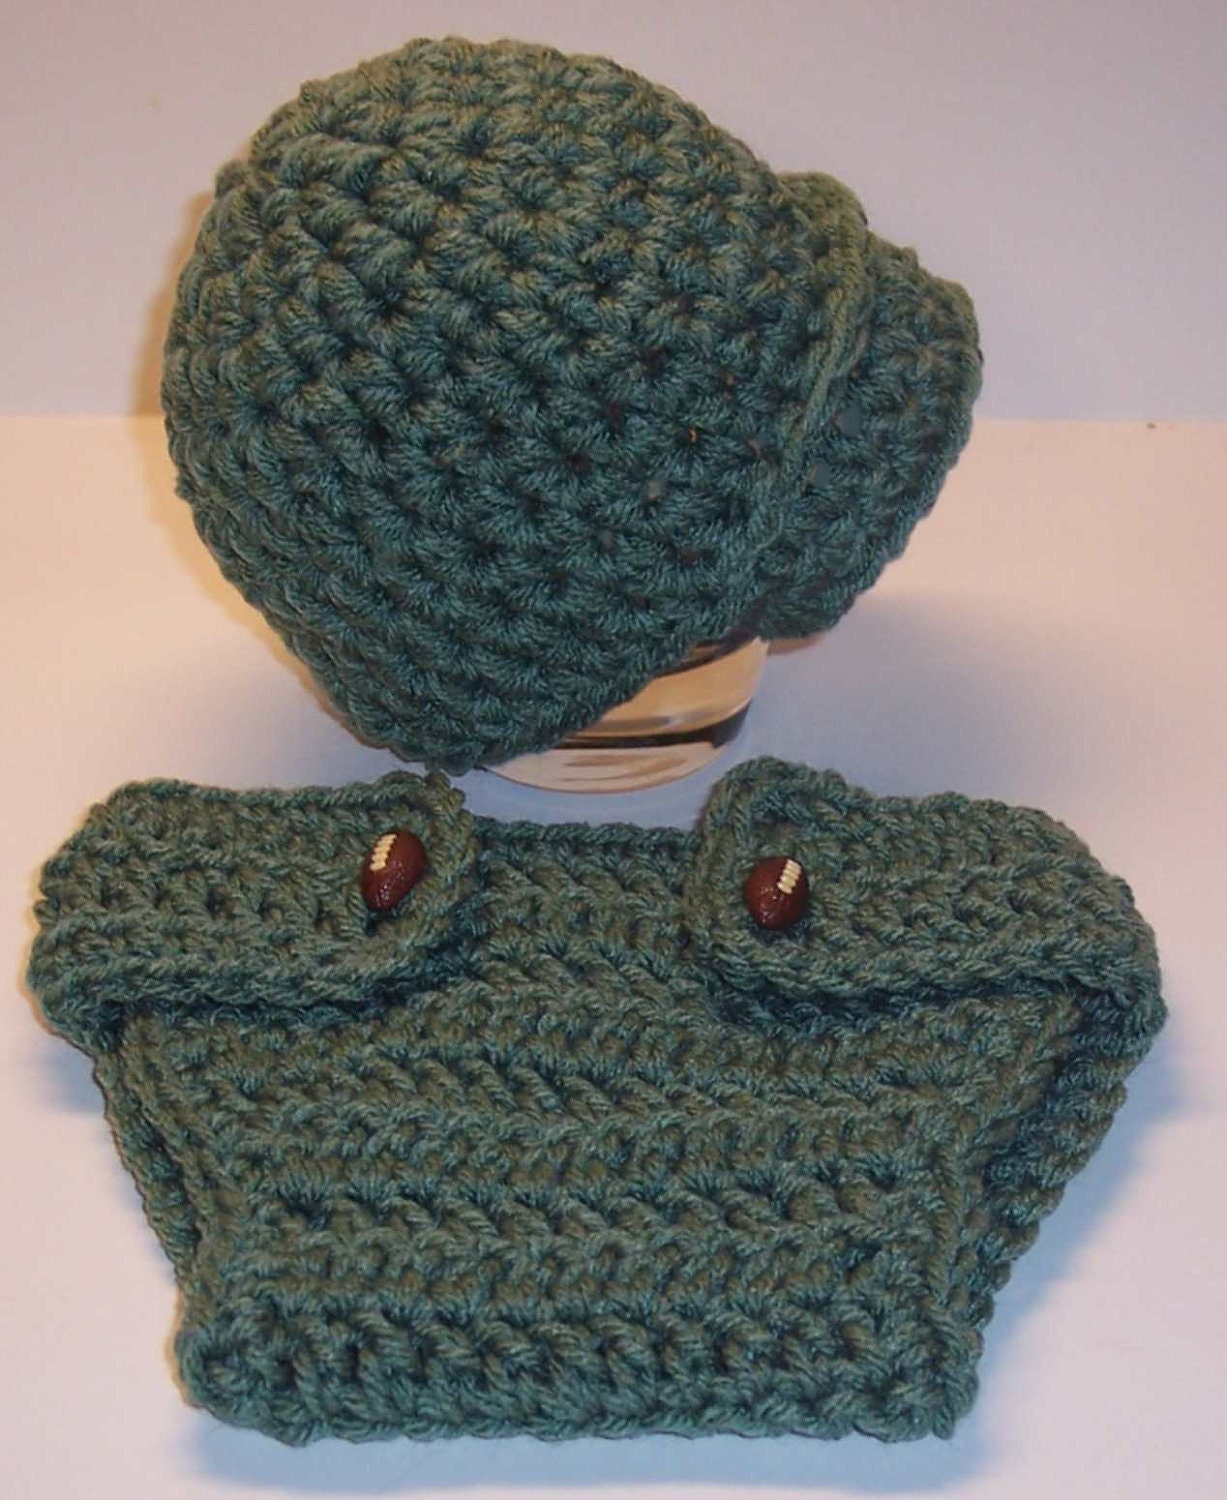 Newborn CHUNKY NEWSBOY HAT and Button Diaper Cover Set Great Photo  Props  Pdf  Pattern  Instructions  pattern116